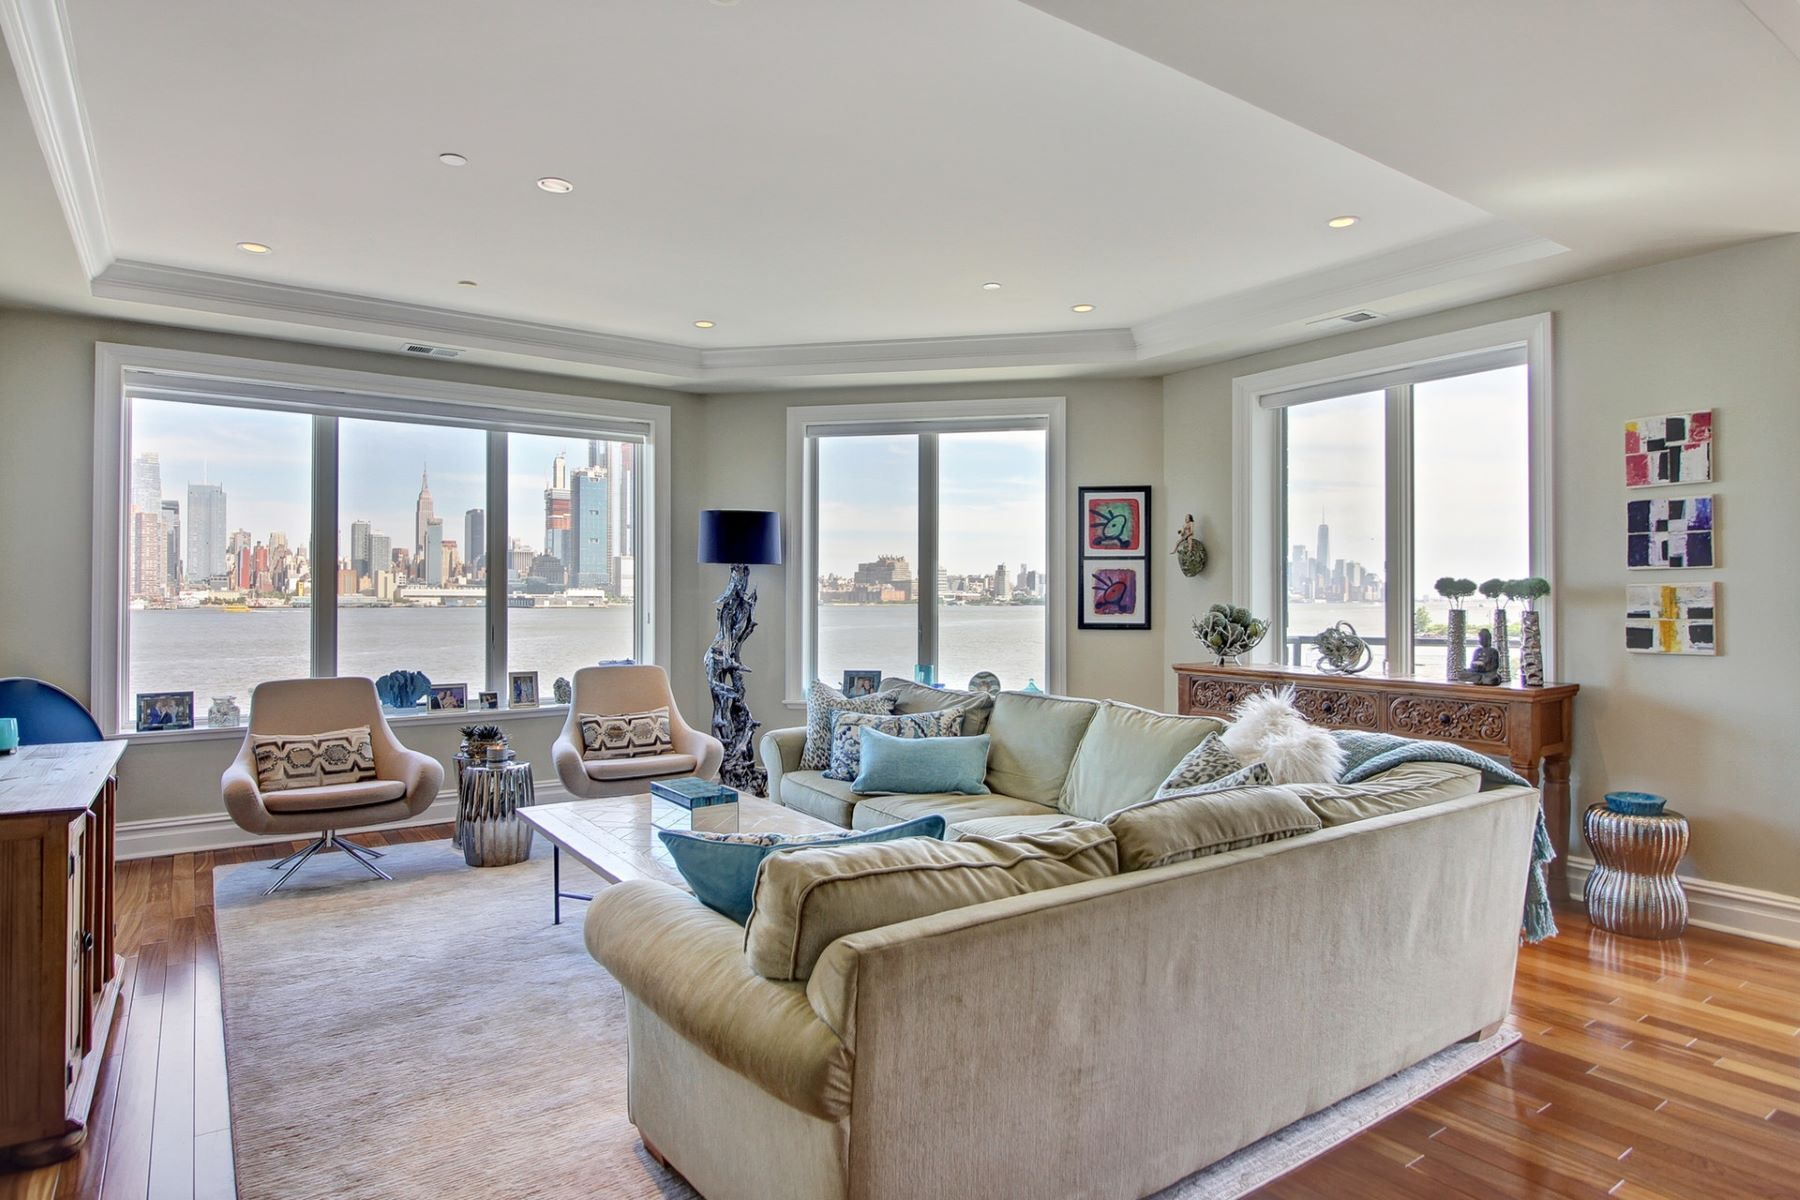 Condominium for Sale at Henley on the Hudson 250 Henley Pl #308 Weehawken, New Jersey 07086 United States